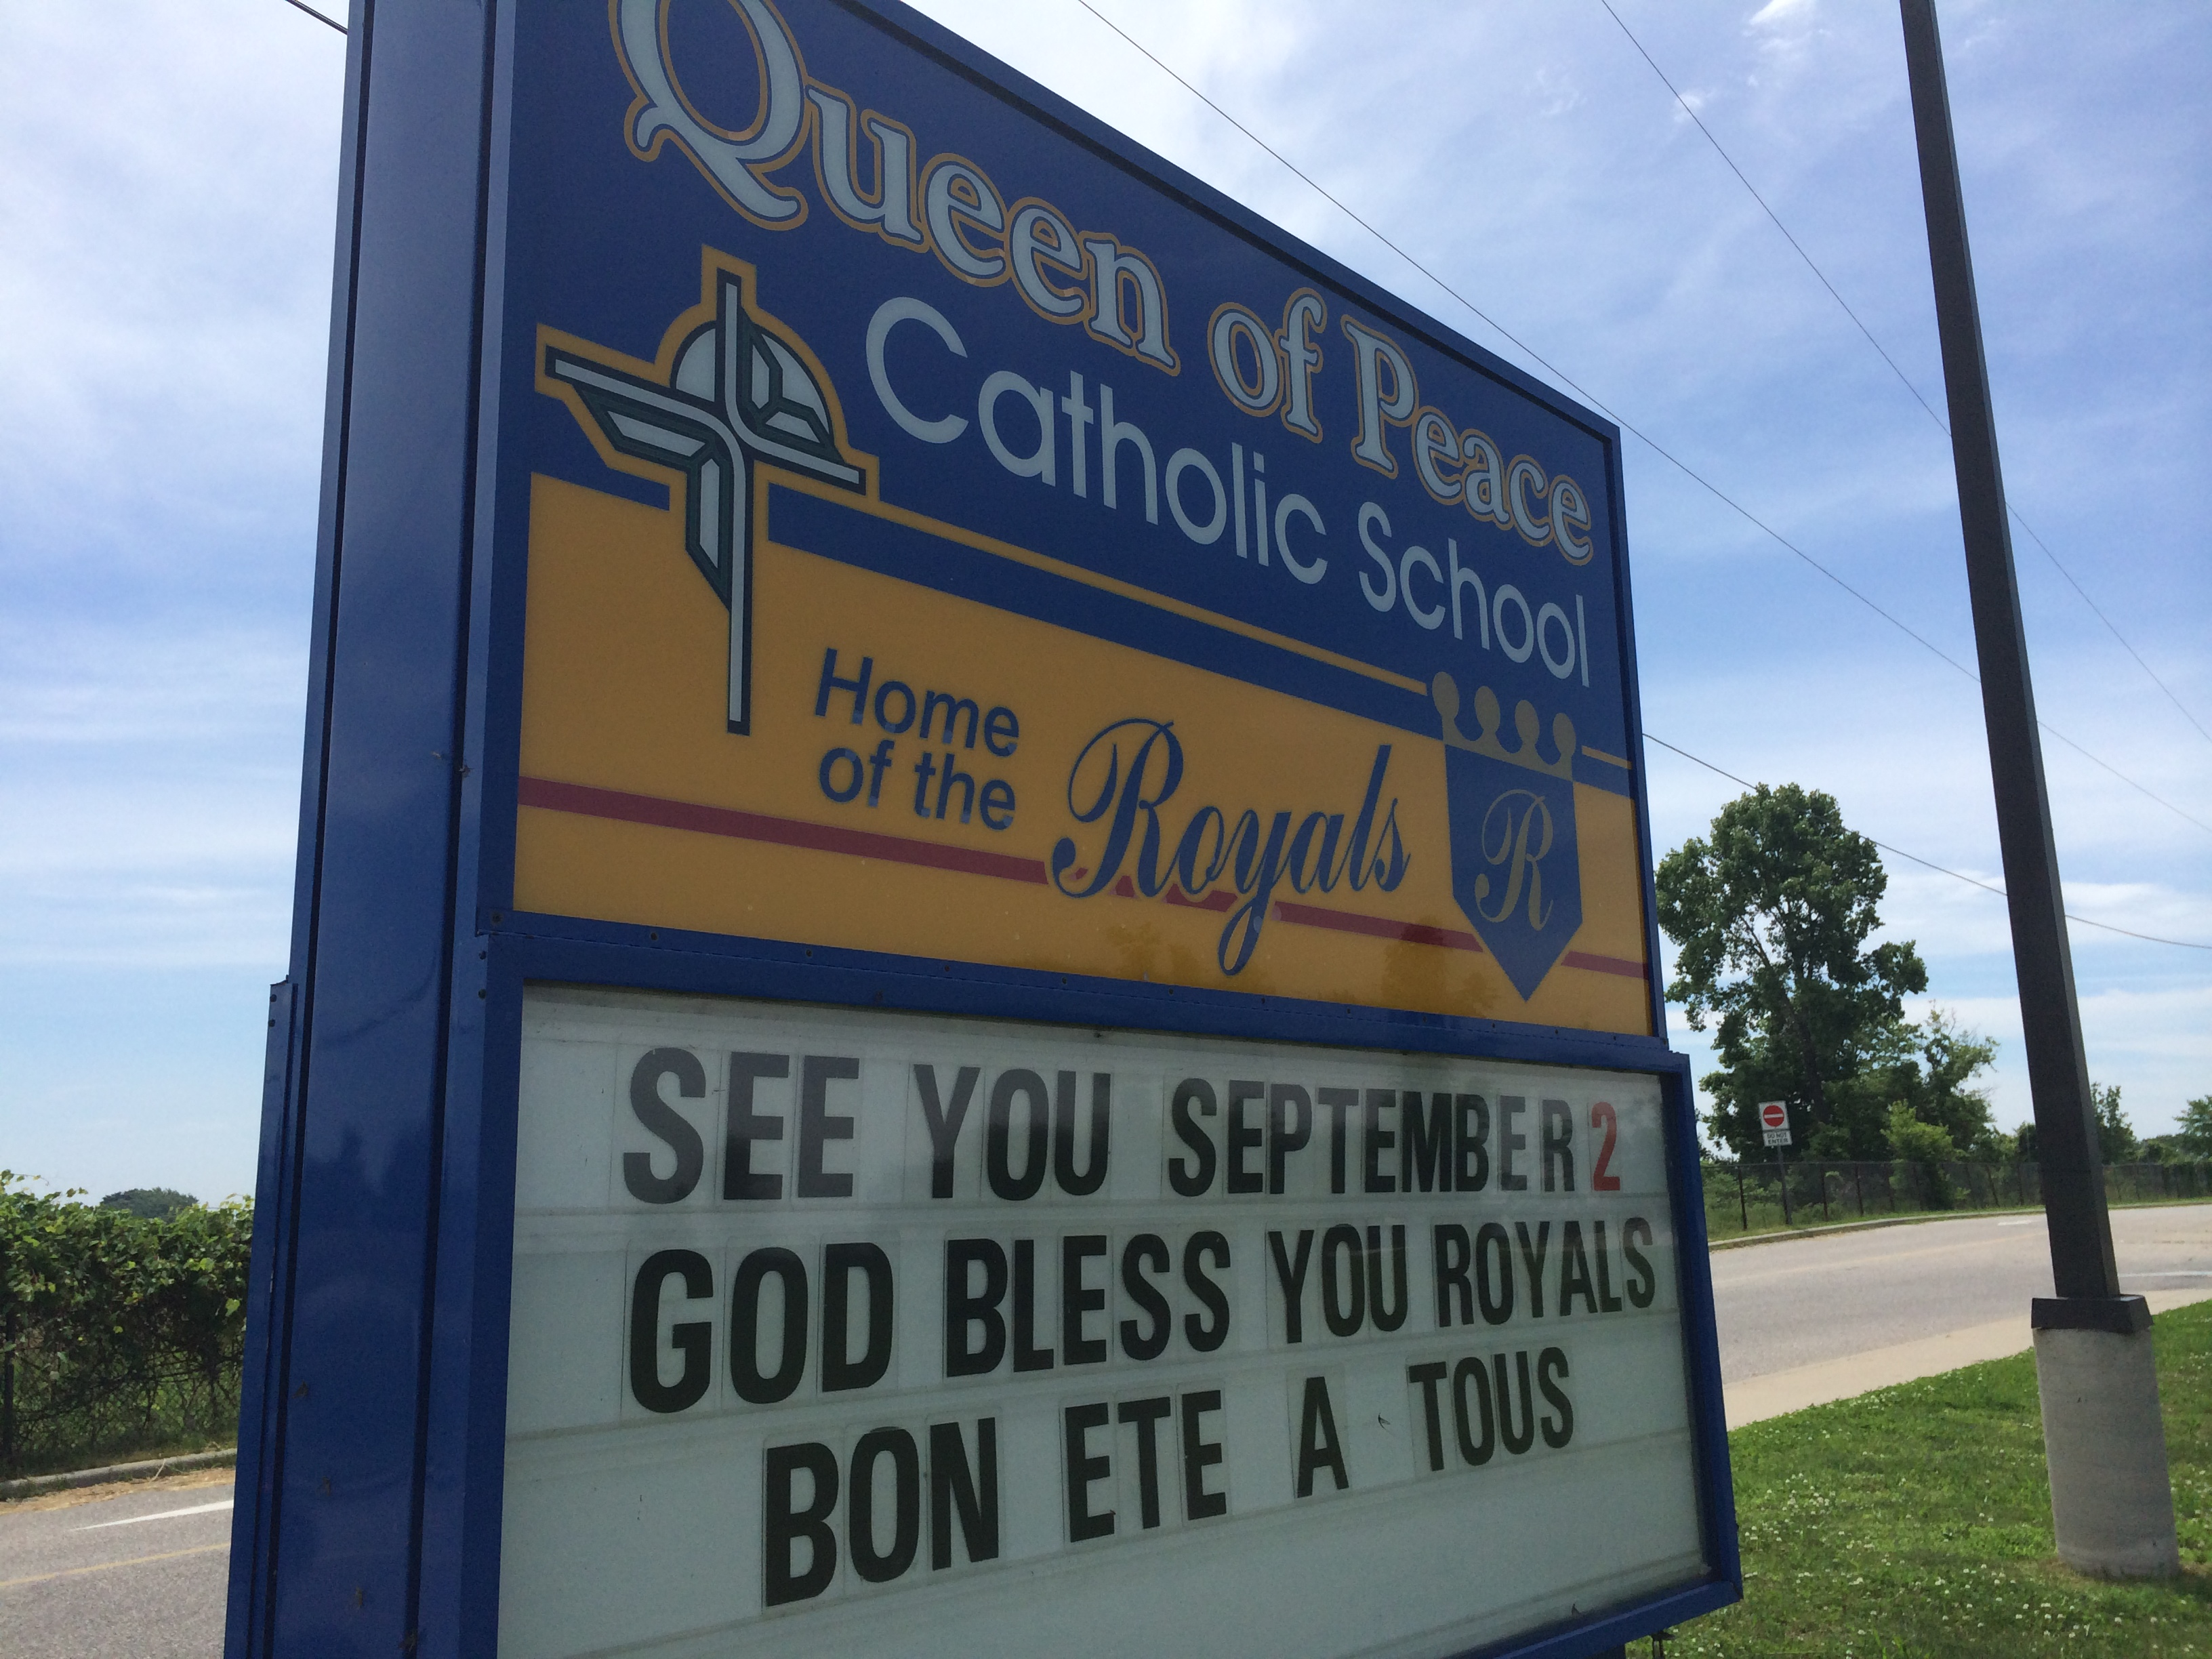 Queen of Peace Catholic Elementary School, June 30, 2014. (Photo by Ricardo Veneza)